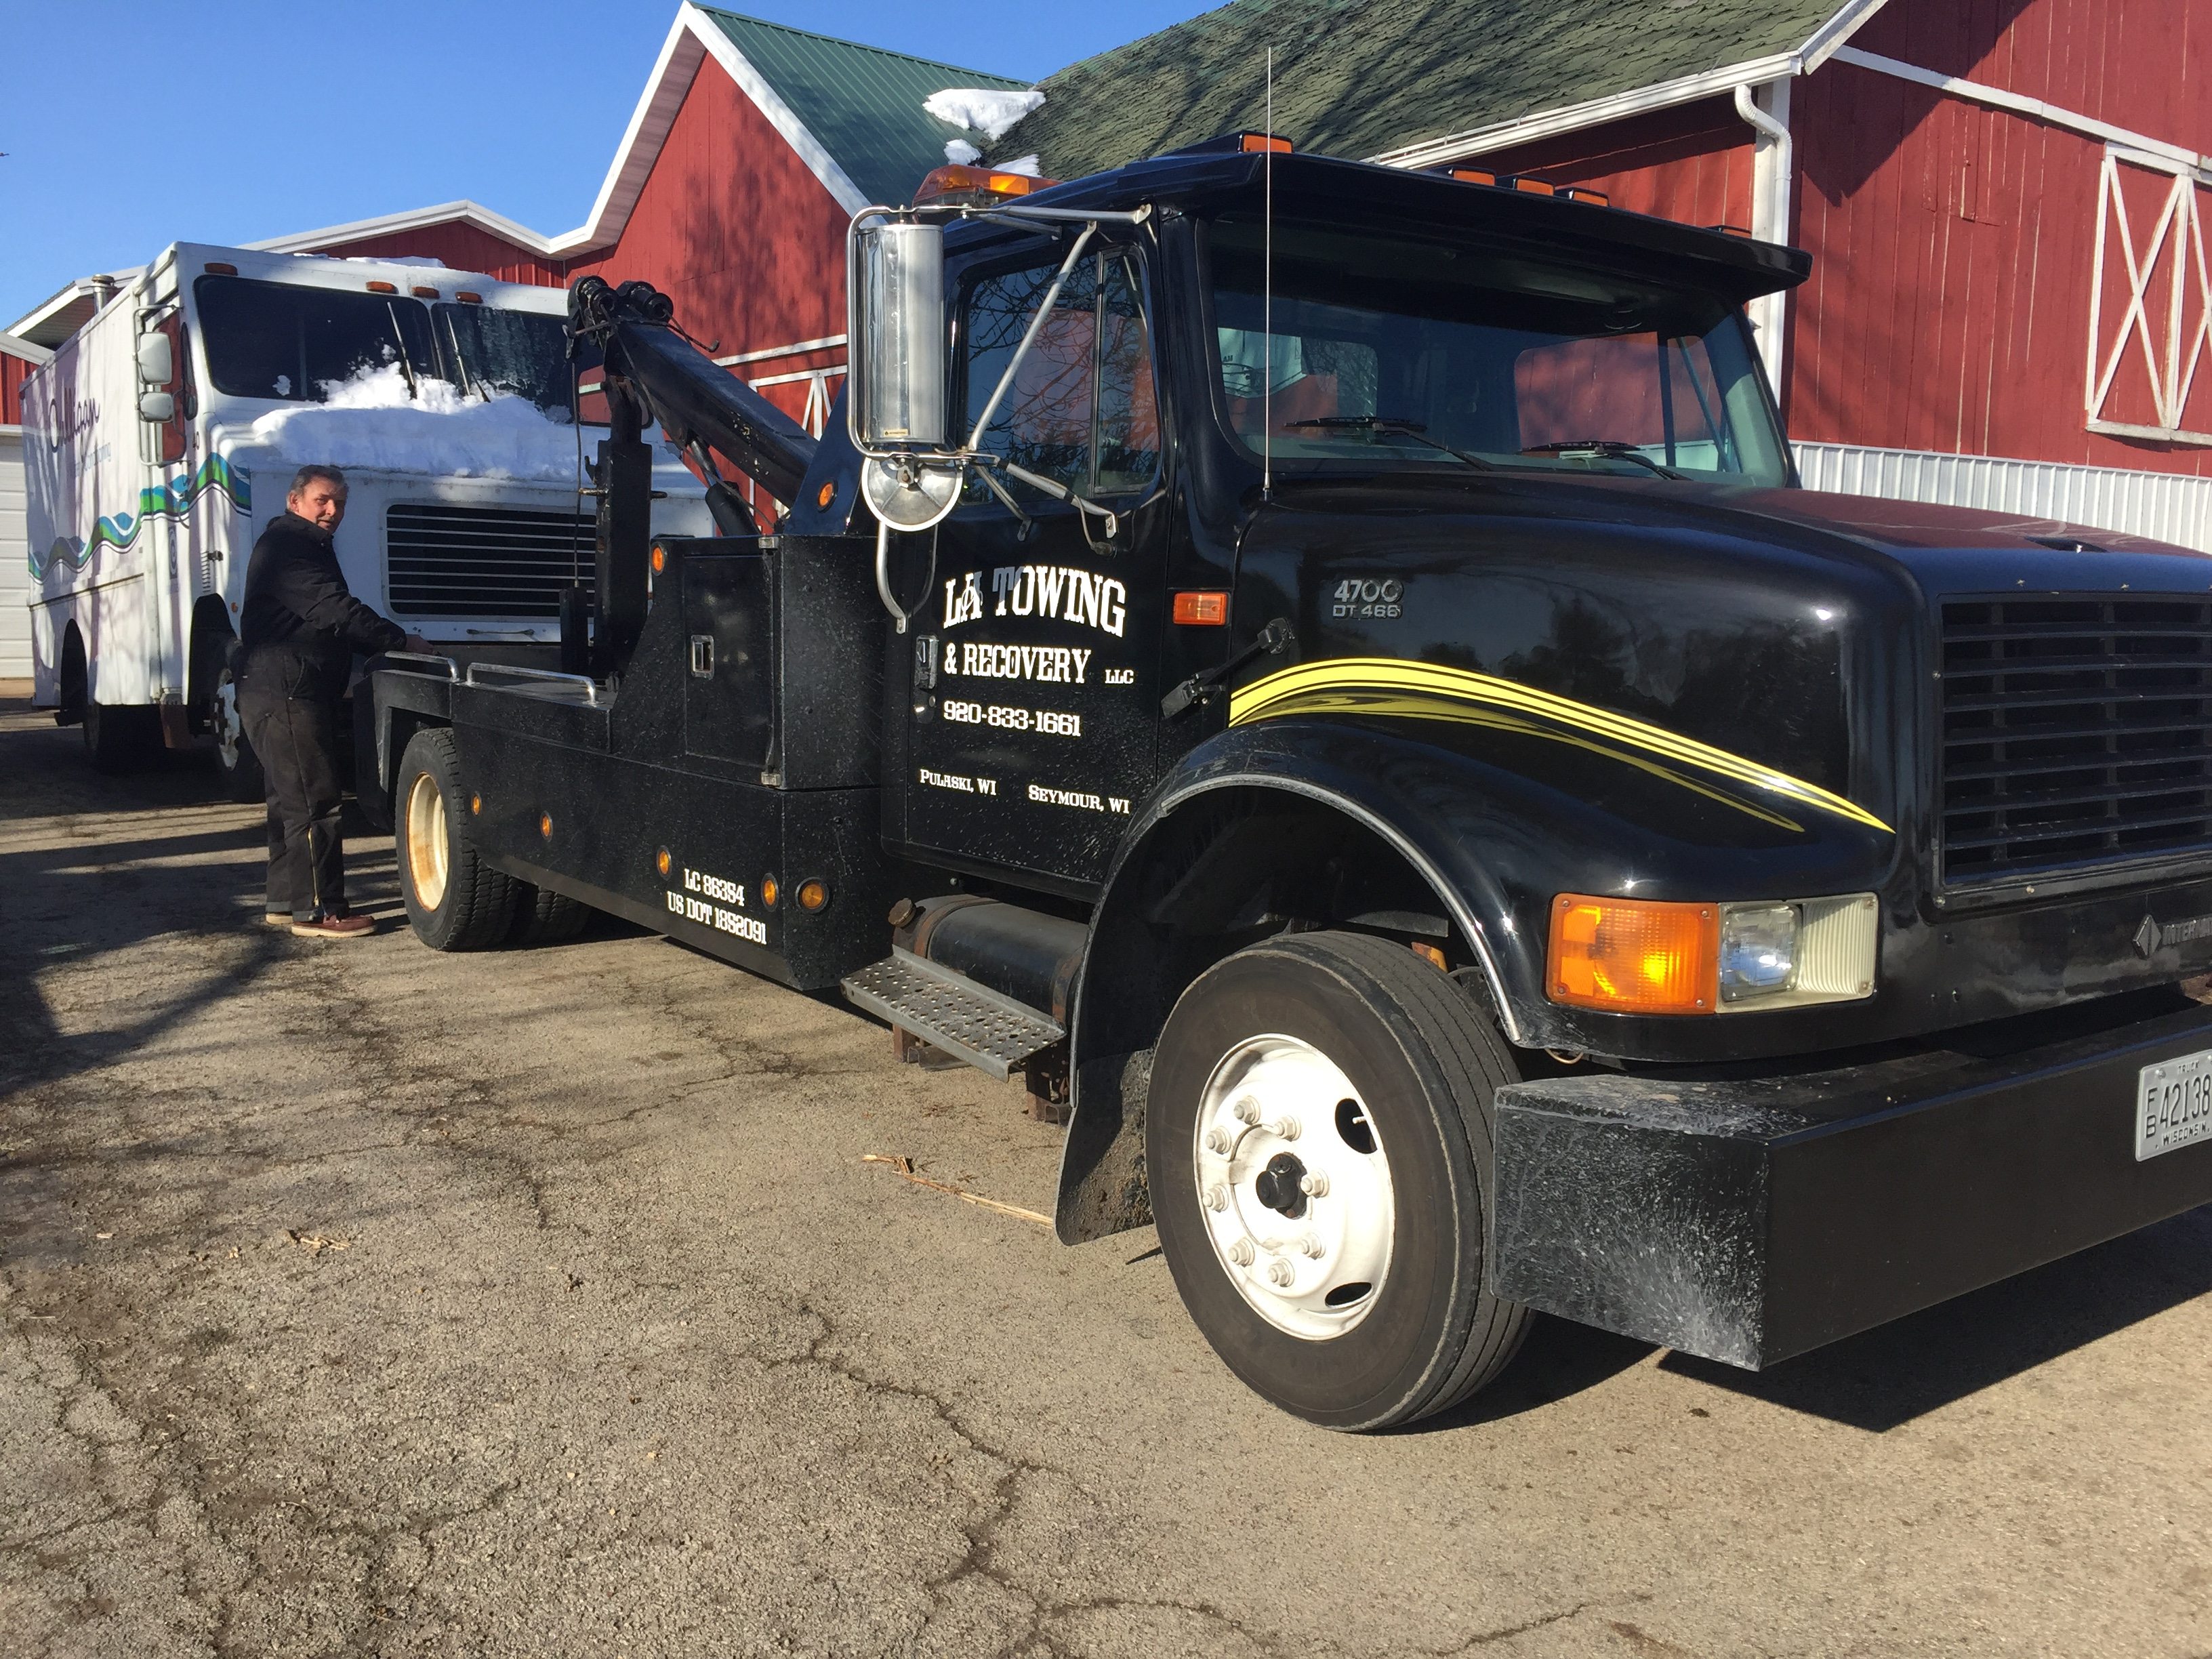 LA Towing & Recovery, LLC image 26